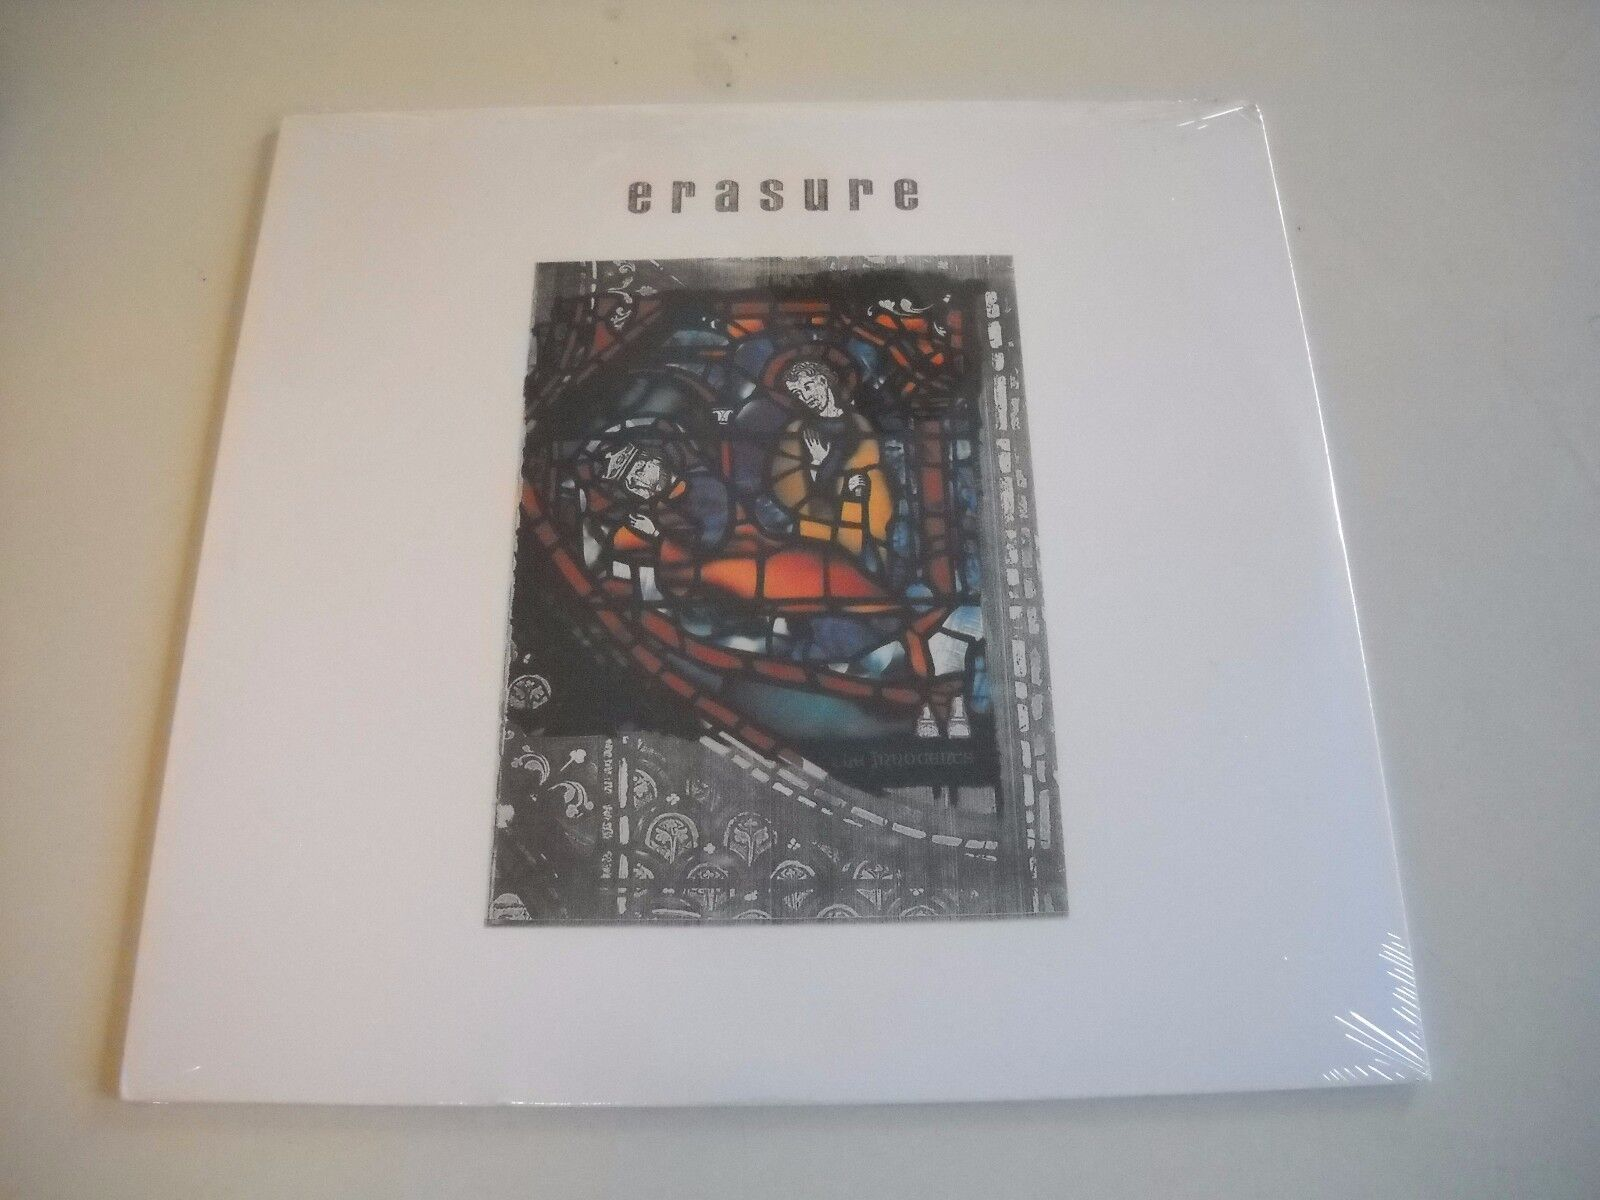 Изображение товара Erasure-The Innocents. on Sire, Reprise Records 25730-1. New in package.